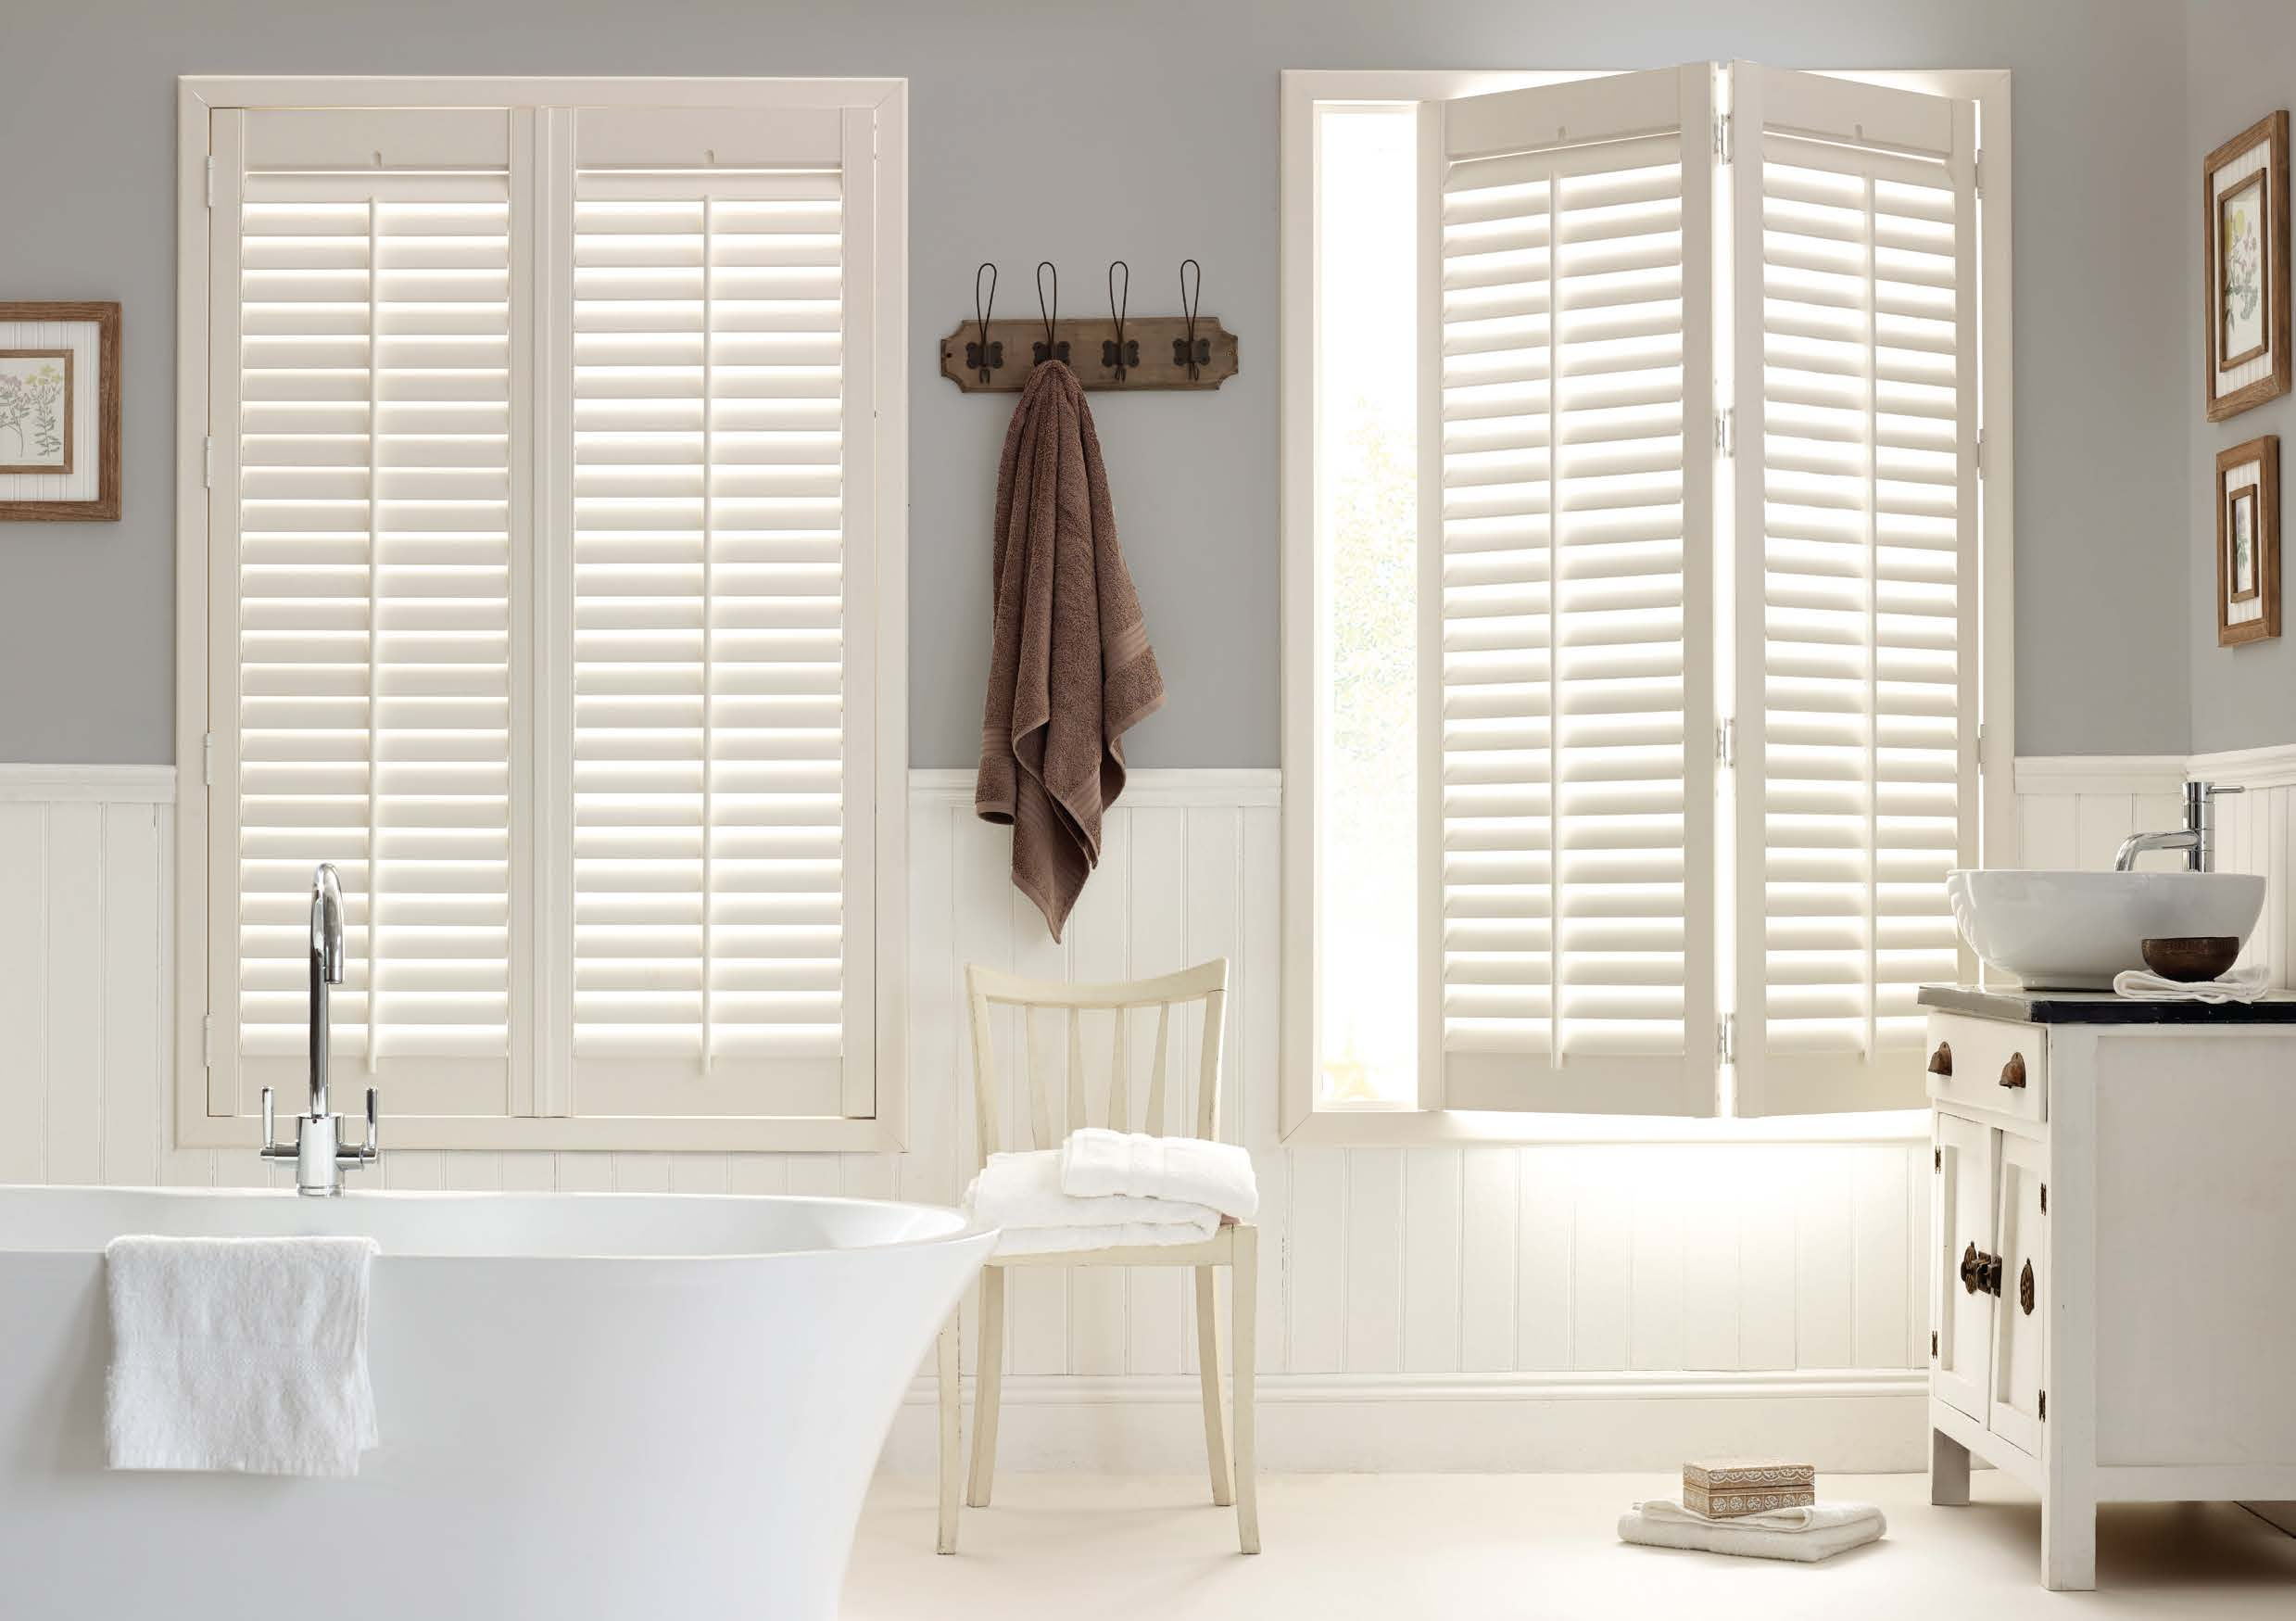 Bathroom Shutters Winchester - Shuttersouth - Hampshire